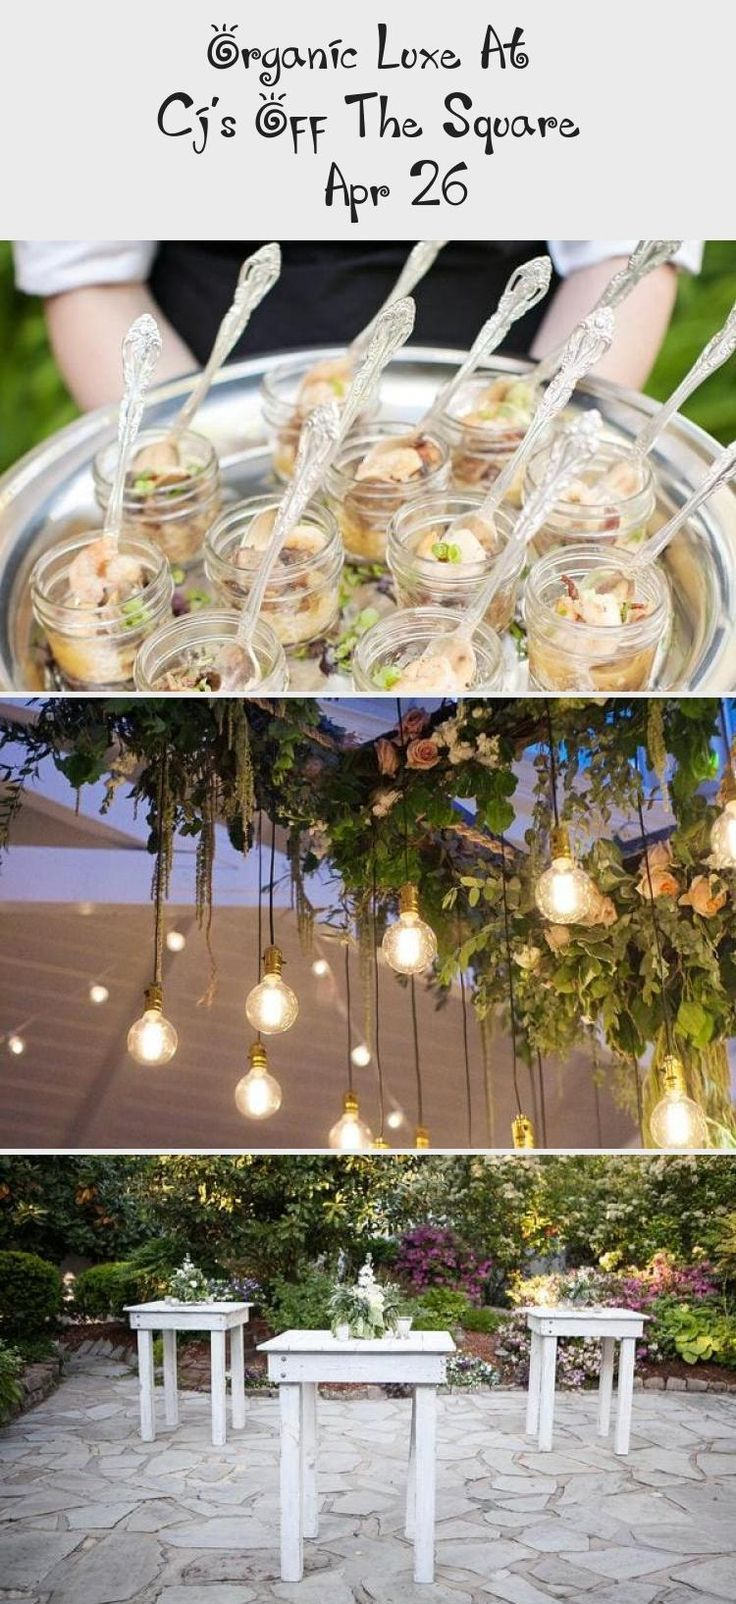 Jan 27, 2020 - Organic Luxe Garden Wedding near Nashville. Love these grey farm tables and the muted blue, peach and green florals. Southern chic! Venue: CJ's Off the Square Florist: The Enchanted Florist Rentals: Southern Events Party Rental Printed Pieces: Designs in Paper Lighting: Nashville Event Lighting #Tropicalgardenwedding #gardenweddingShoes #gardenweddingTable #gardenweddingAltar #gardenweddingHairstyles